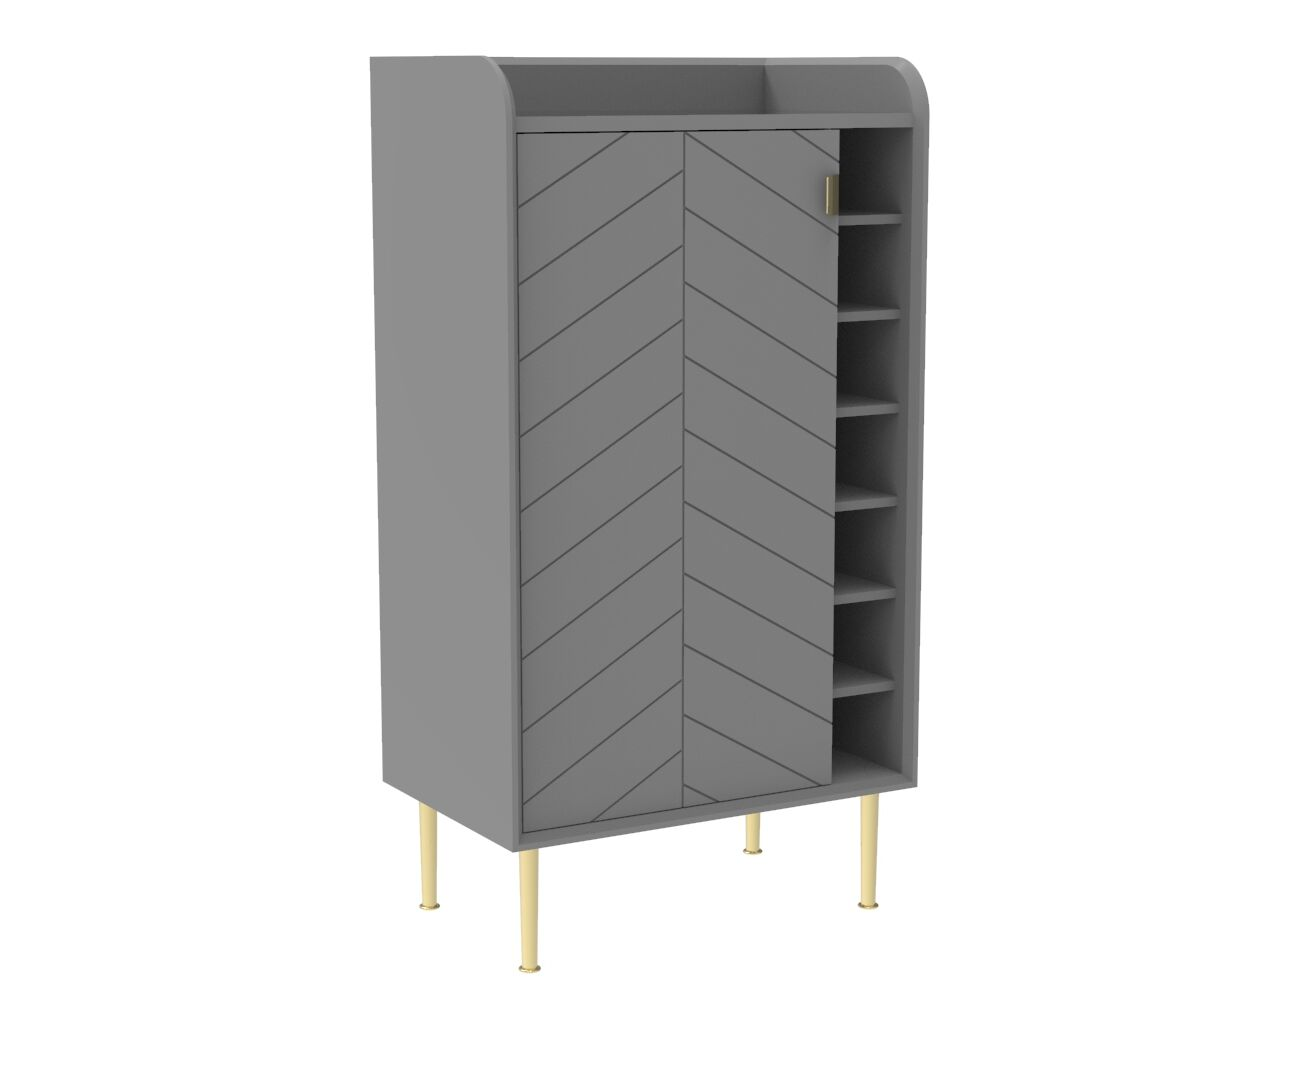 Chevron-patterned Adele Drinks Cabinet in Mist Grey and Brass